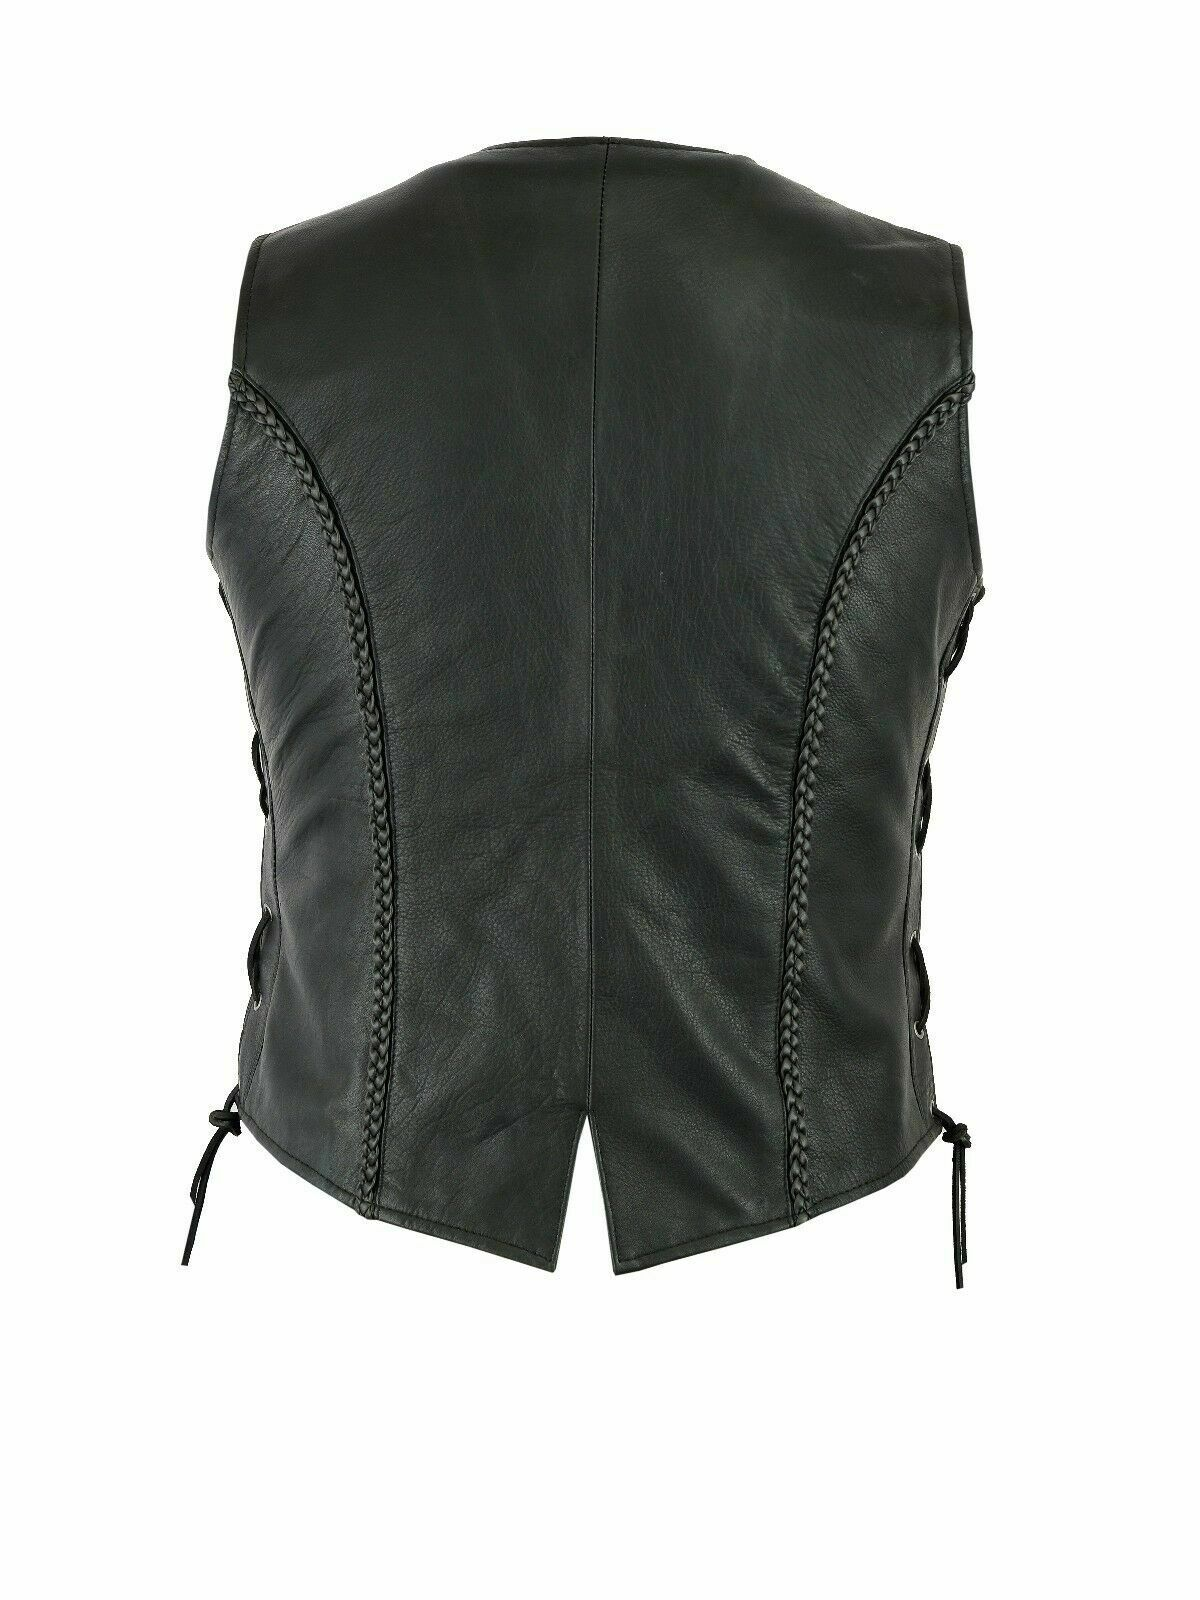 20 Ladies Real Leather Laced Up Motorcycle Biker Waistcoat Womens Gillette Vest